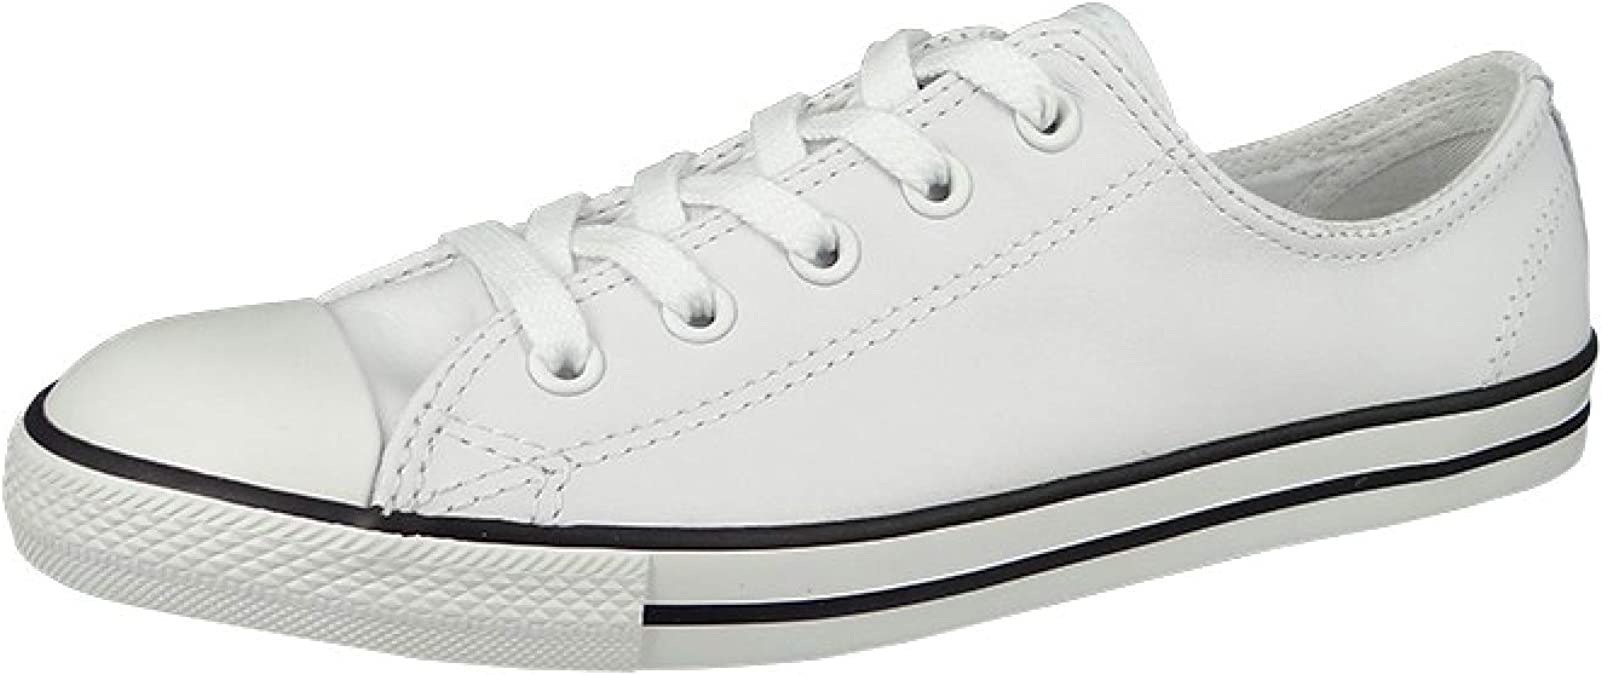 Converse Damen Chuck Taylor All Star Dainty Ox Sneakers